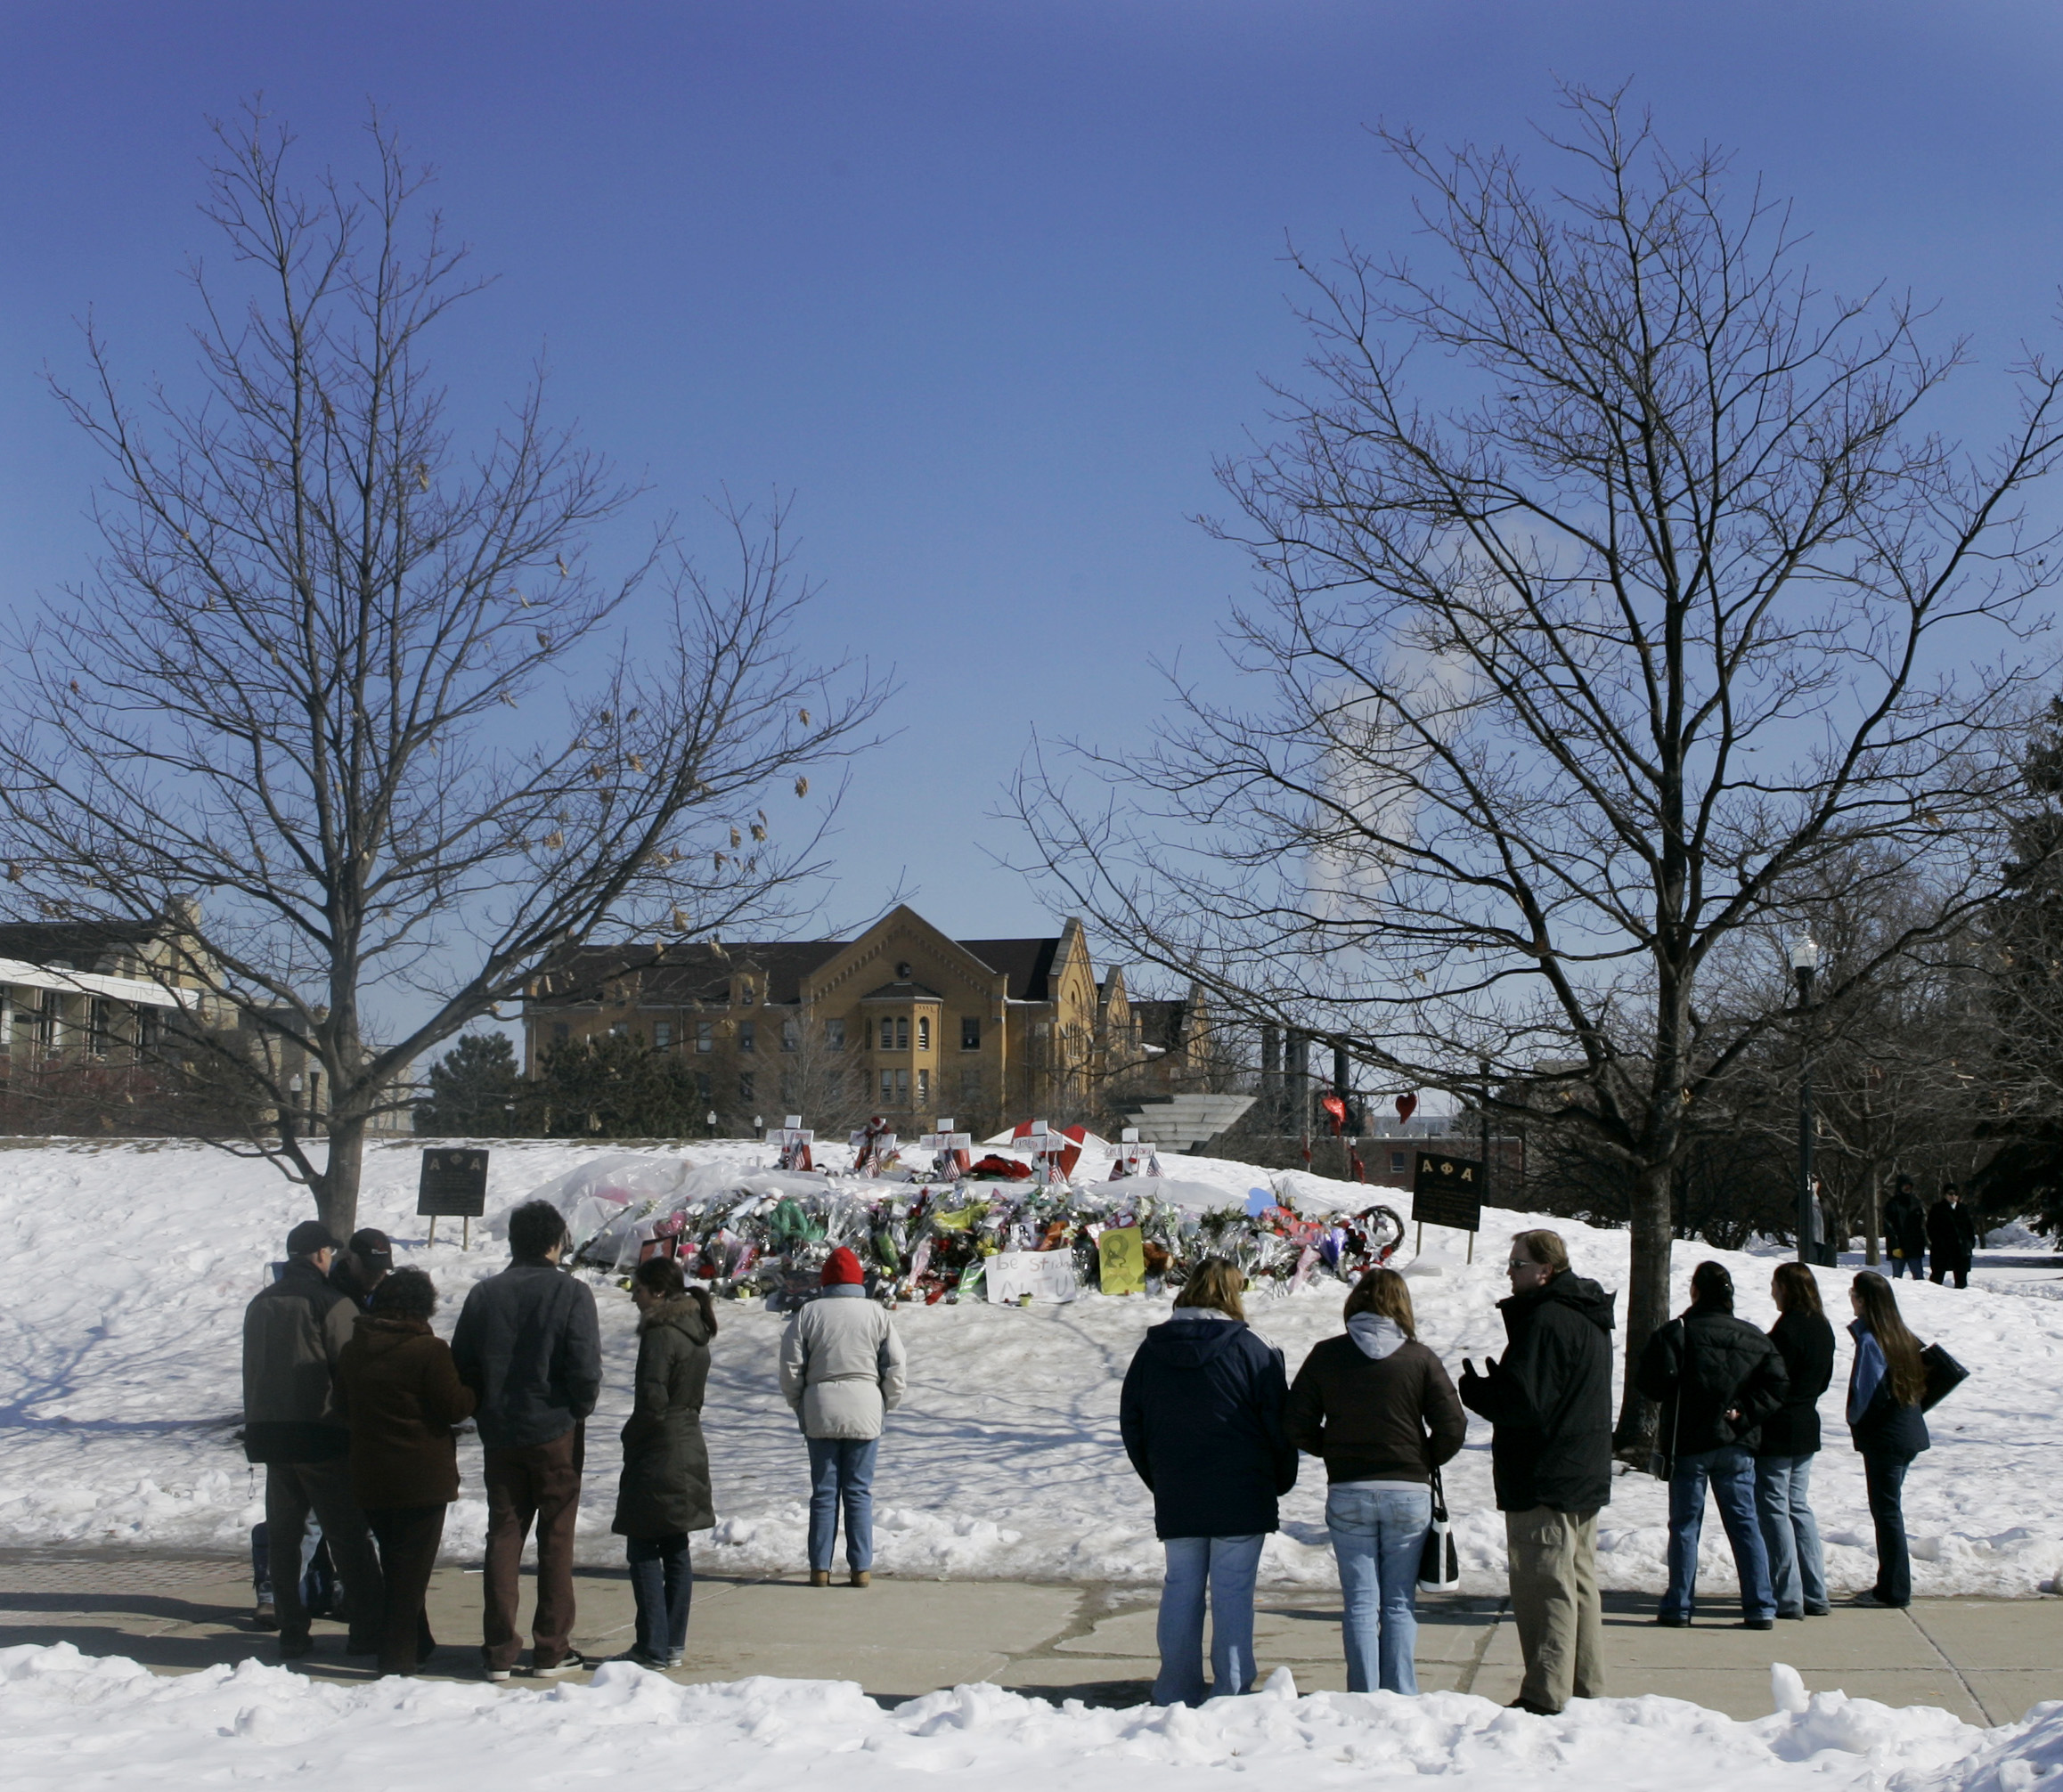 Mourners gather near a memorial to the five students who were killed during the Valentines Day shooting at Northern Illinois University in De Kalb, Ill., Saturday, Feb. 23, 2008. (AP Photo/Charles Rex Arbogast)